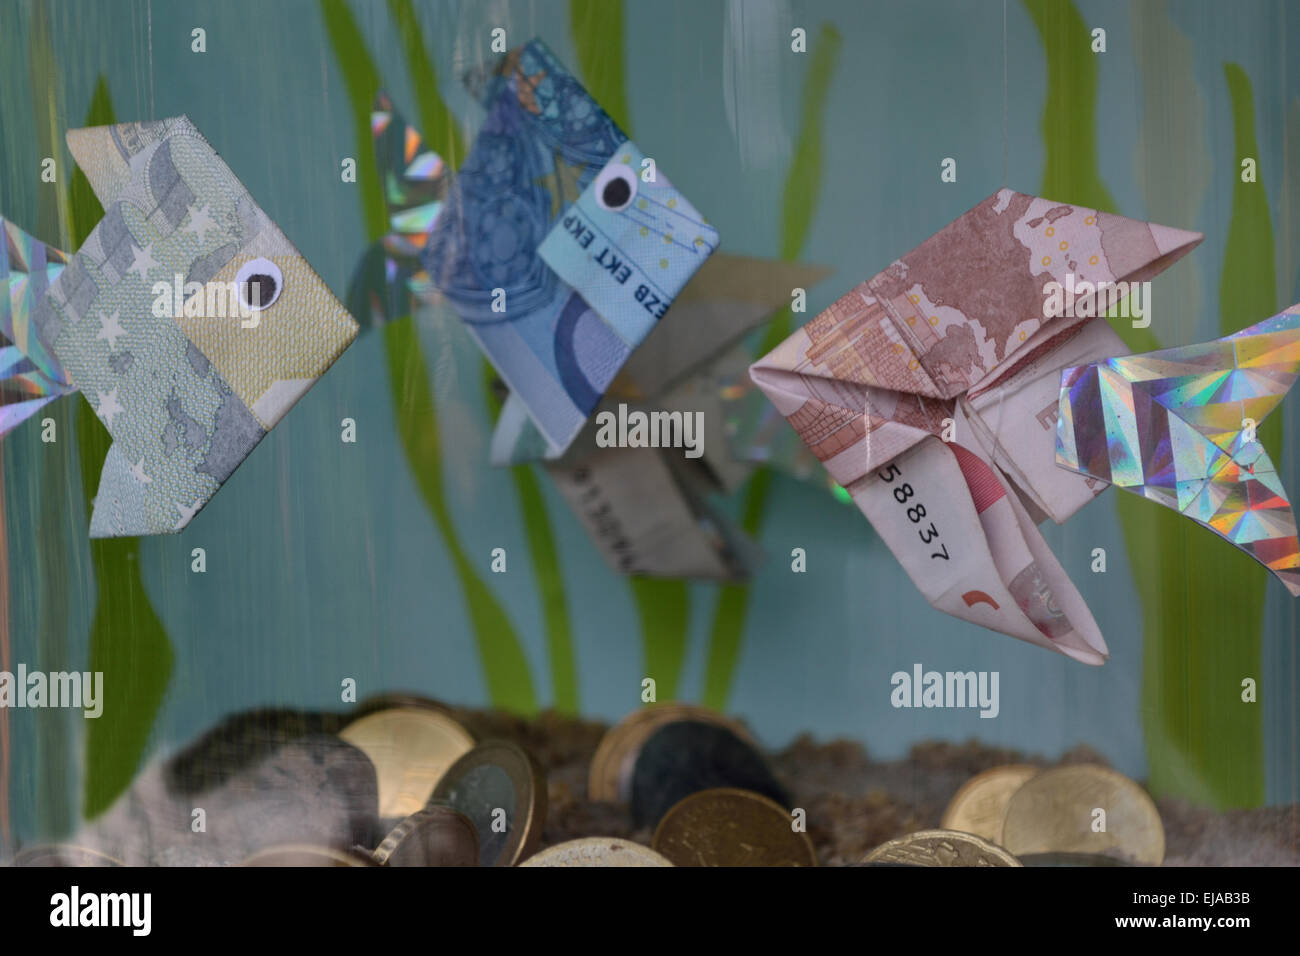 Aquarium with fish money and coins stock photo 80133519 alamy aquarium with fish money and coins jeuxipadfo Choice Image